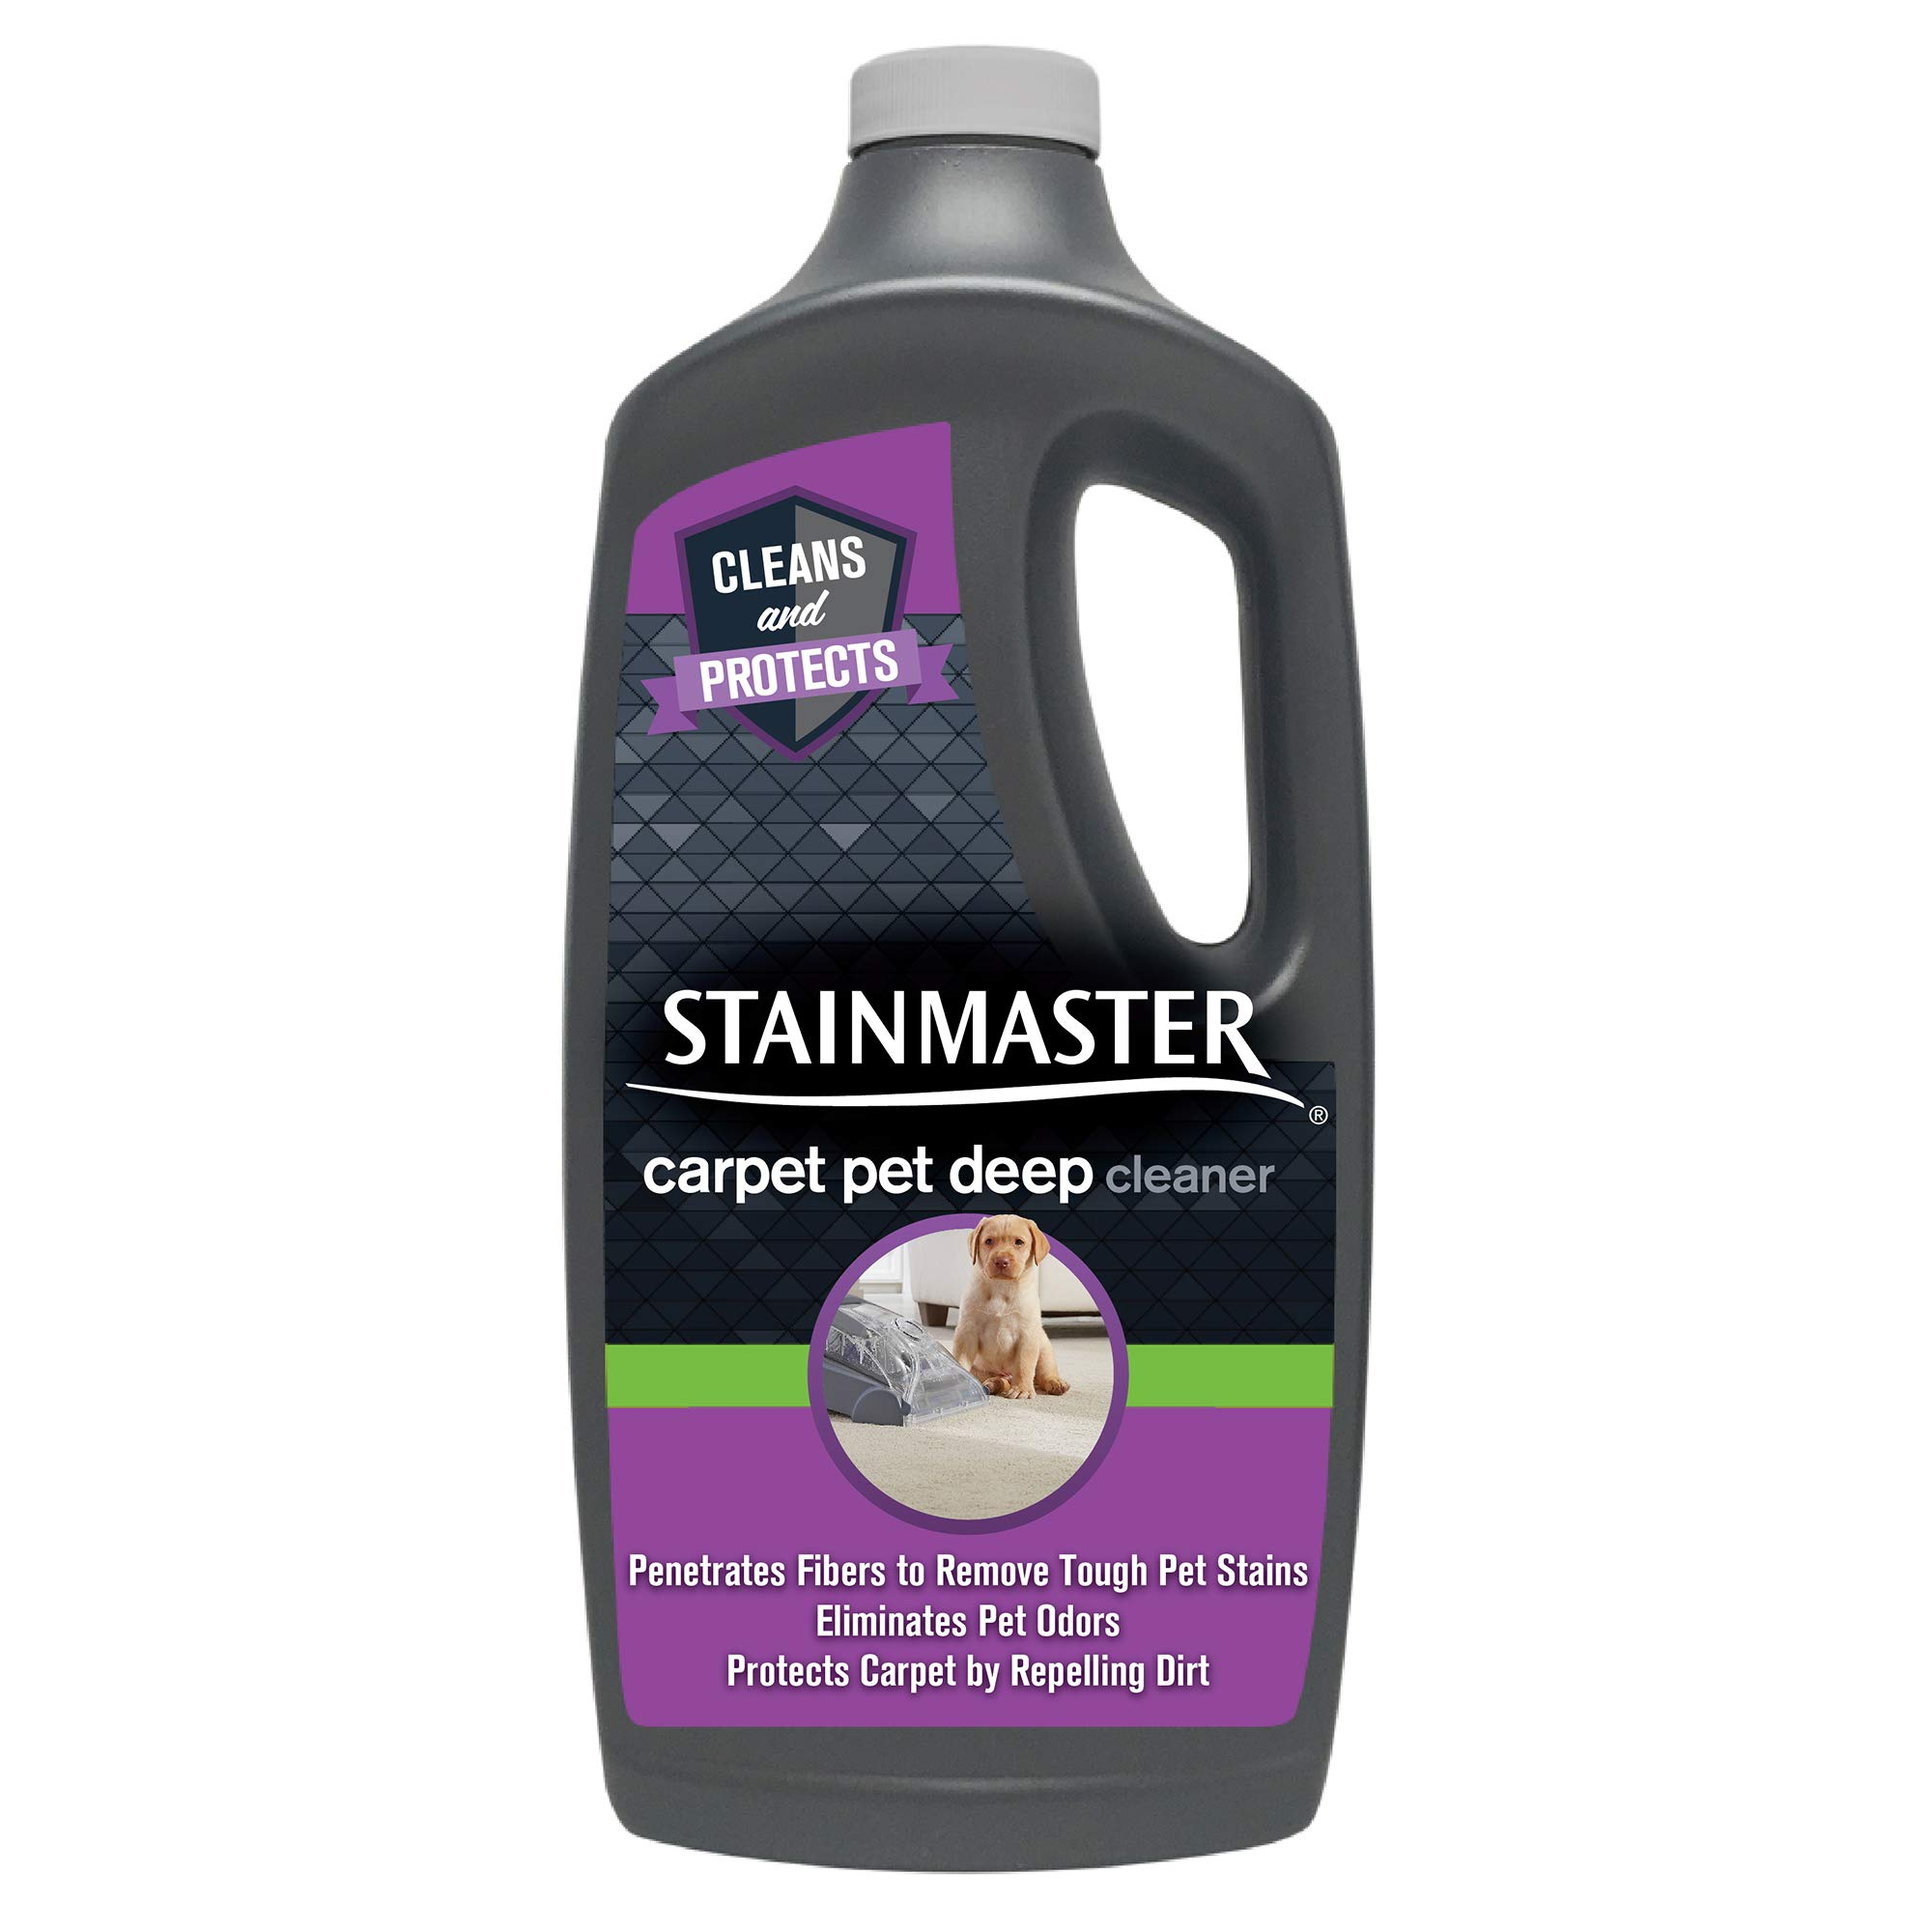 STAINMASTER Carpet Pet Deep Cleaner for Machines, 32 FL OZ